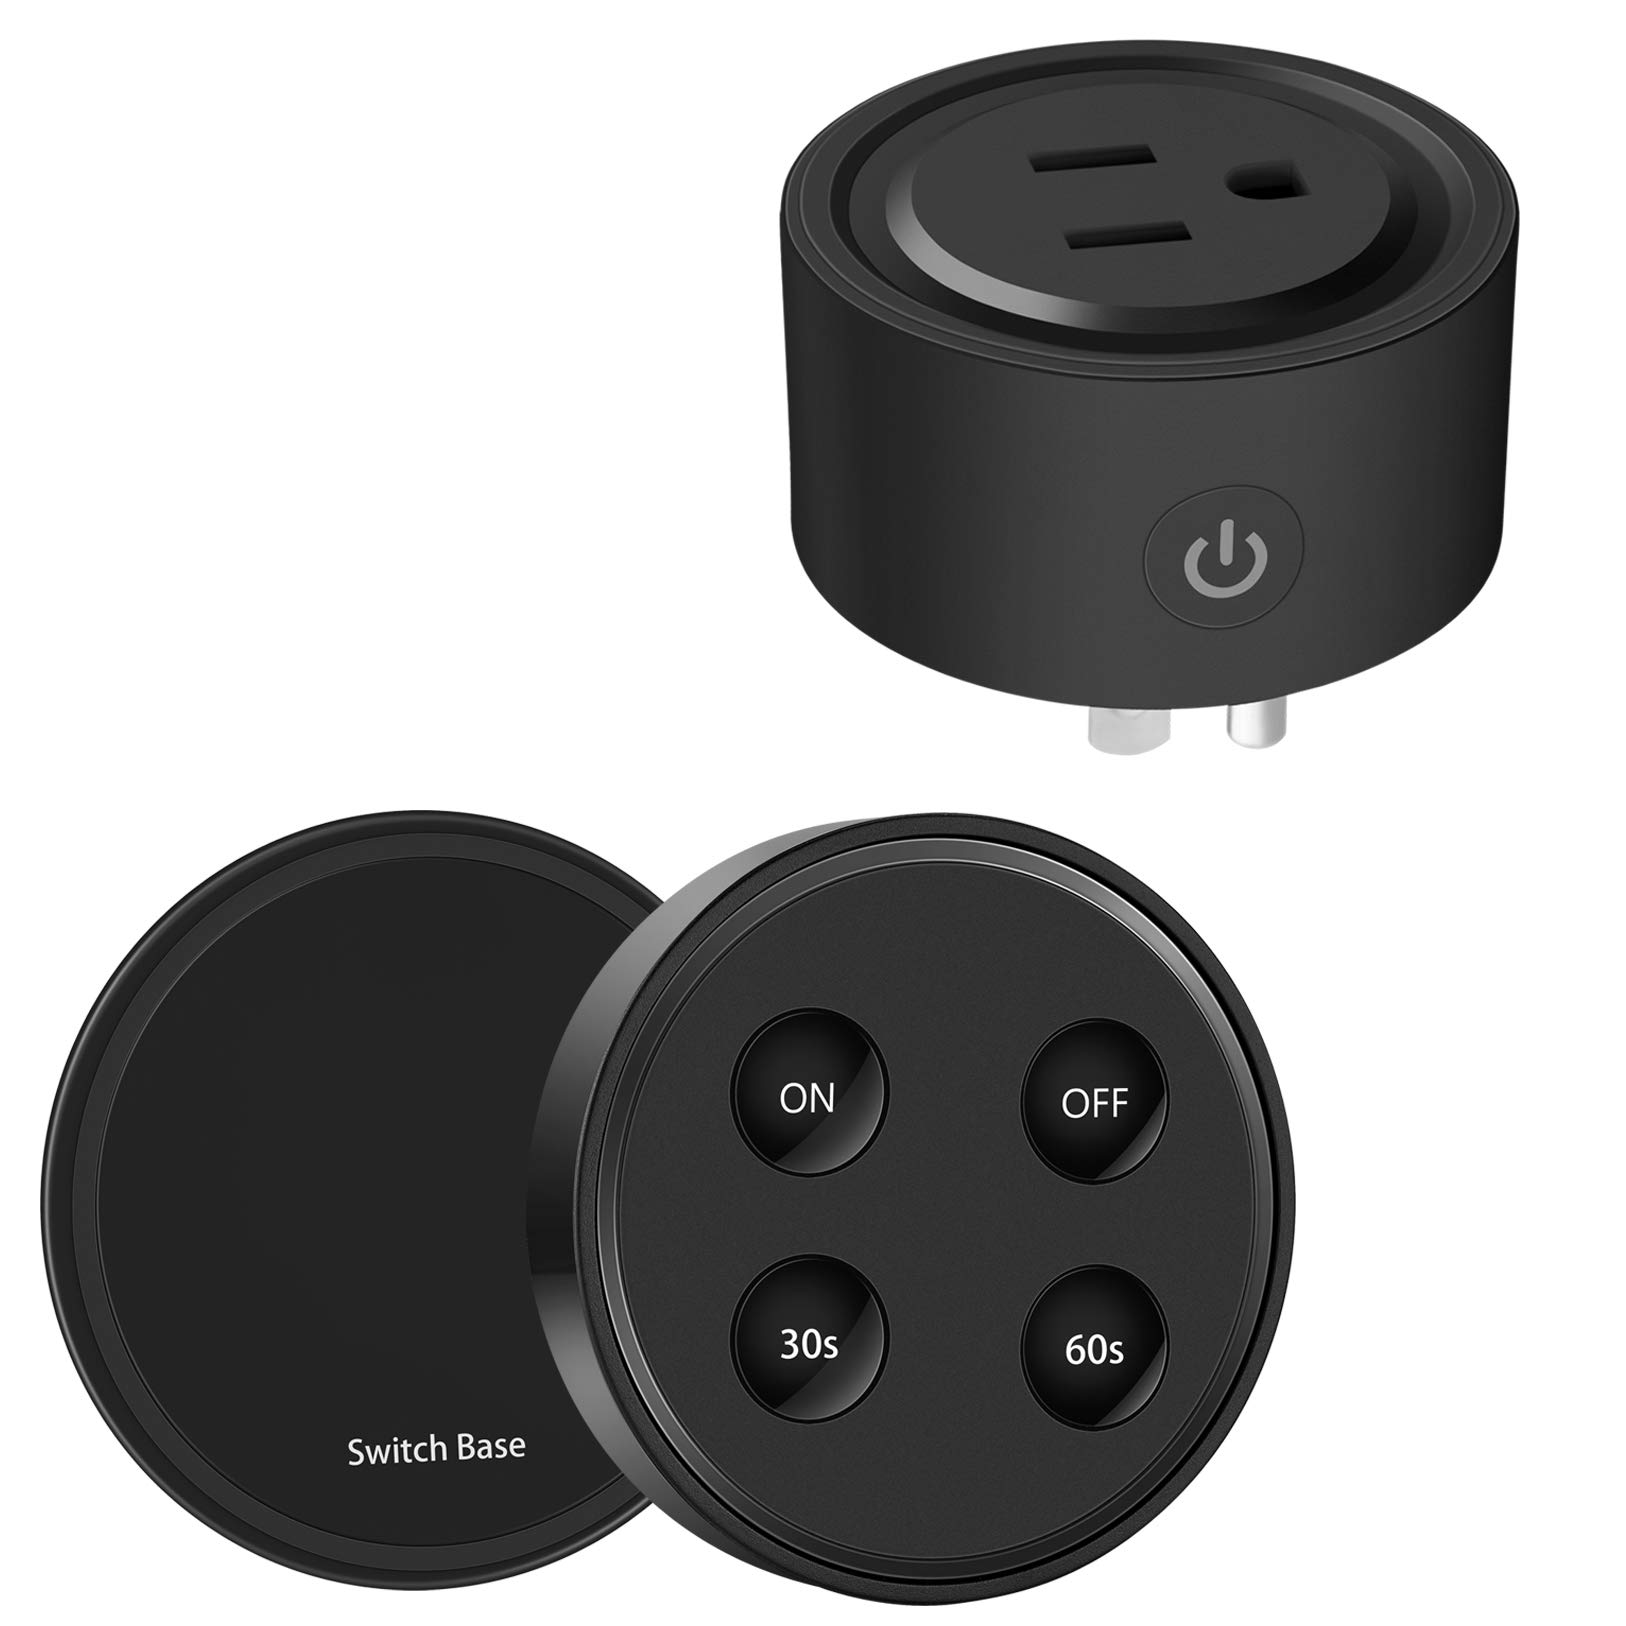 Didikit Garbage Disposal Wireless Switch Kit, Remote Control Outlet Timer with Switch, Sink Top Waste Disposal On/Off Button for 1/3 HP, 1/2 HP Insinkerator, Waste King Waste Food Disposer, 10A/1100W